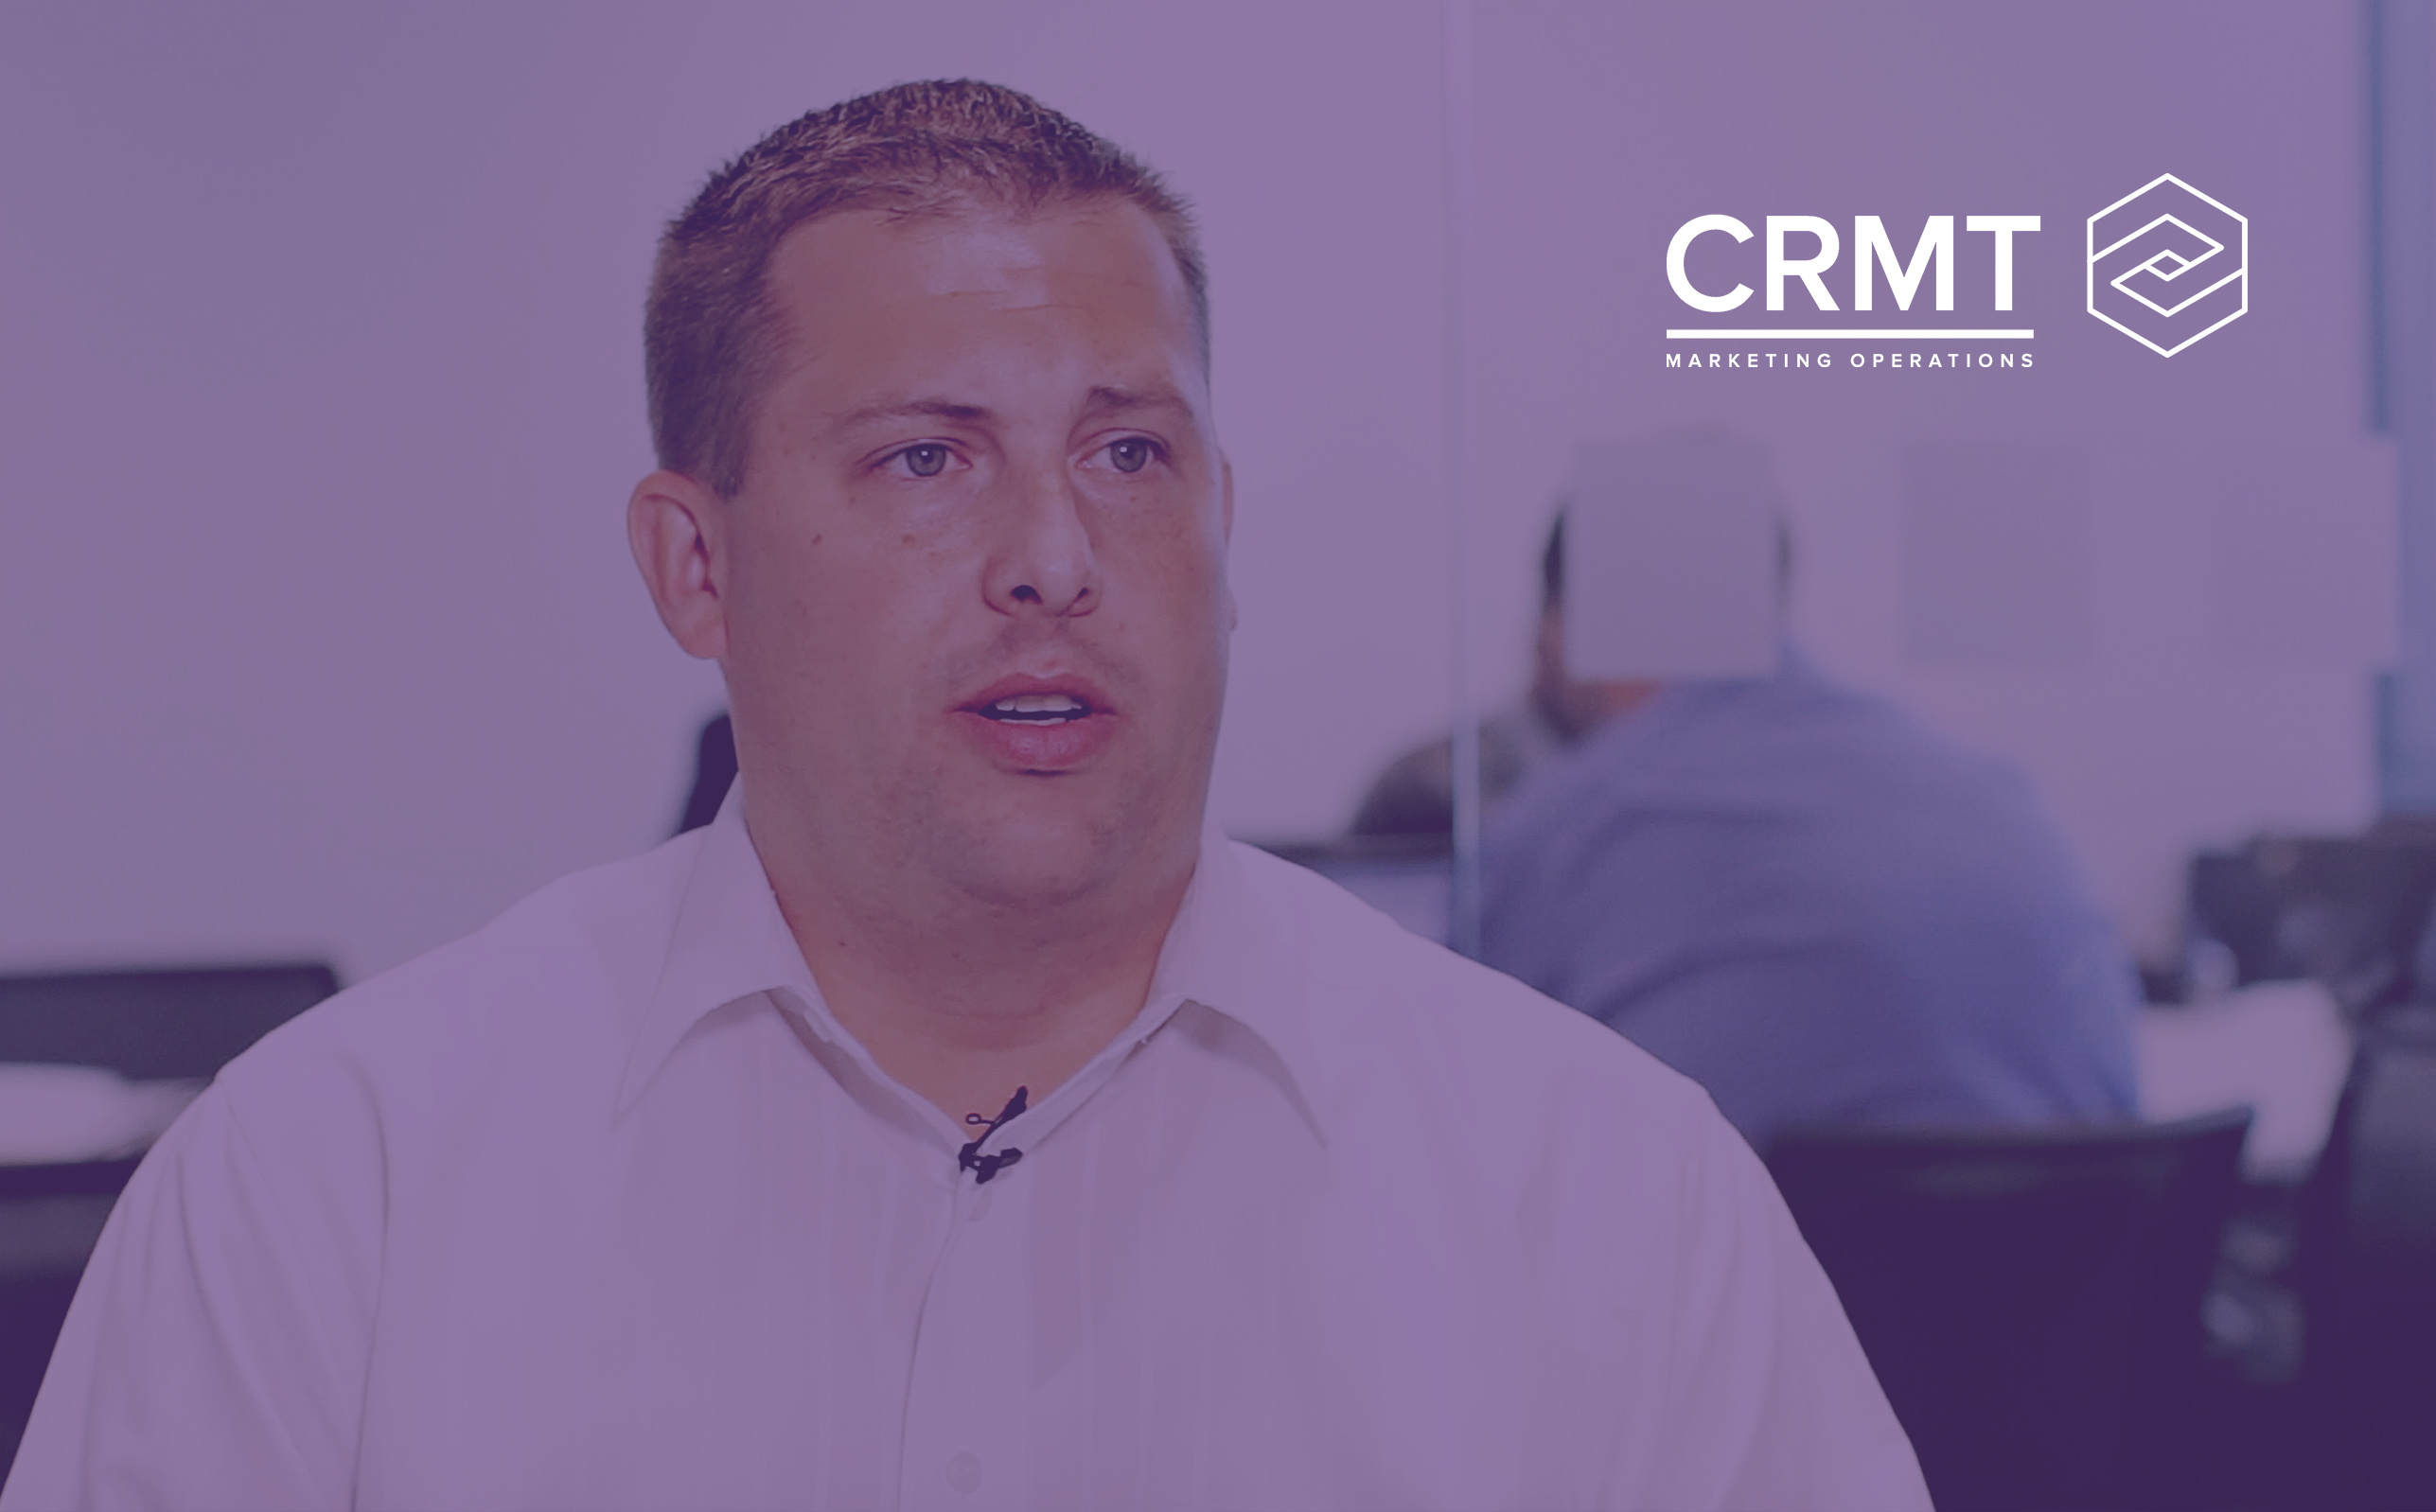 Jeff CRMT Case Study Video